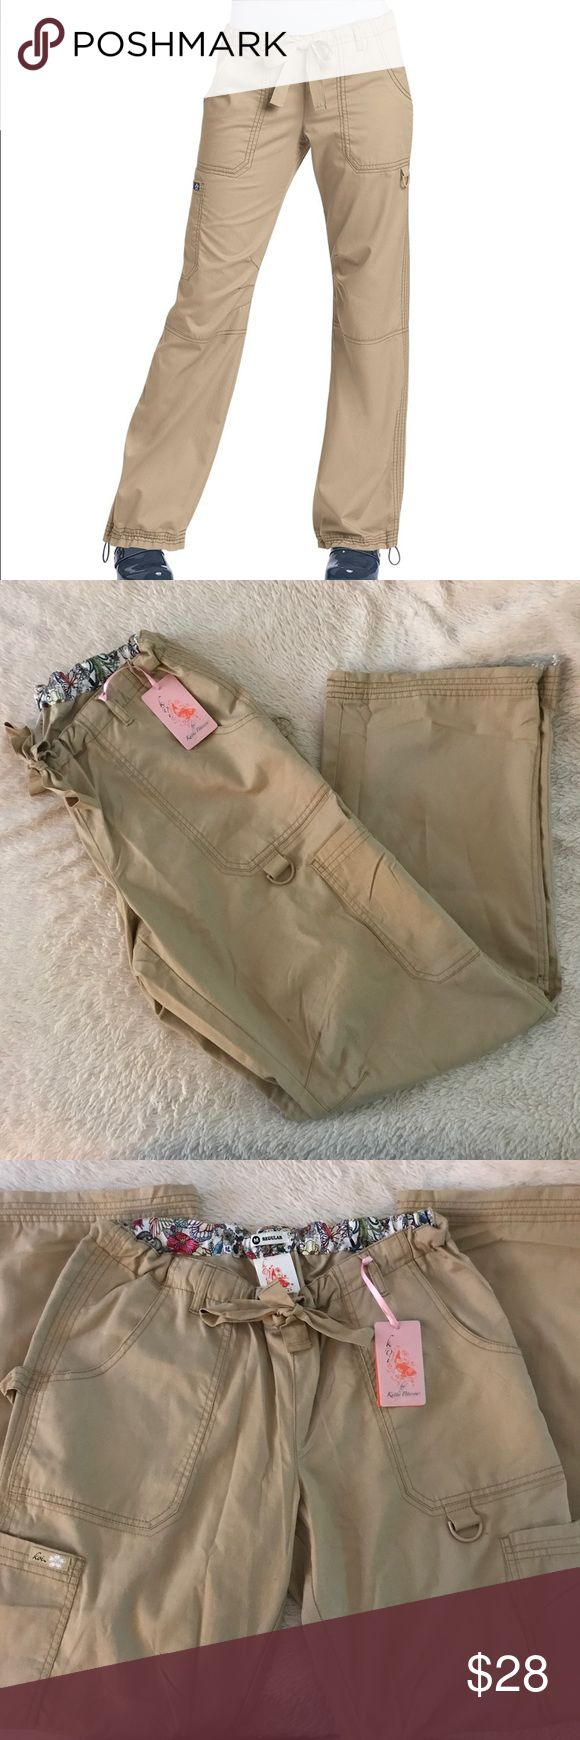 BNWT KOI Lindsey scrub pants size M I purchased these for my daughter and they are too big :( I can't return them since I got them from a vendor at the hospital, so figured I would sell them here. I paid $31.95. Selling for less, but no low ballers please! These are regular length with an inseam of 31 KOI Pants